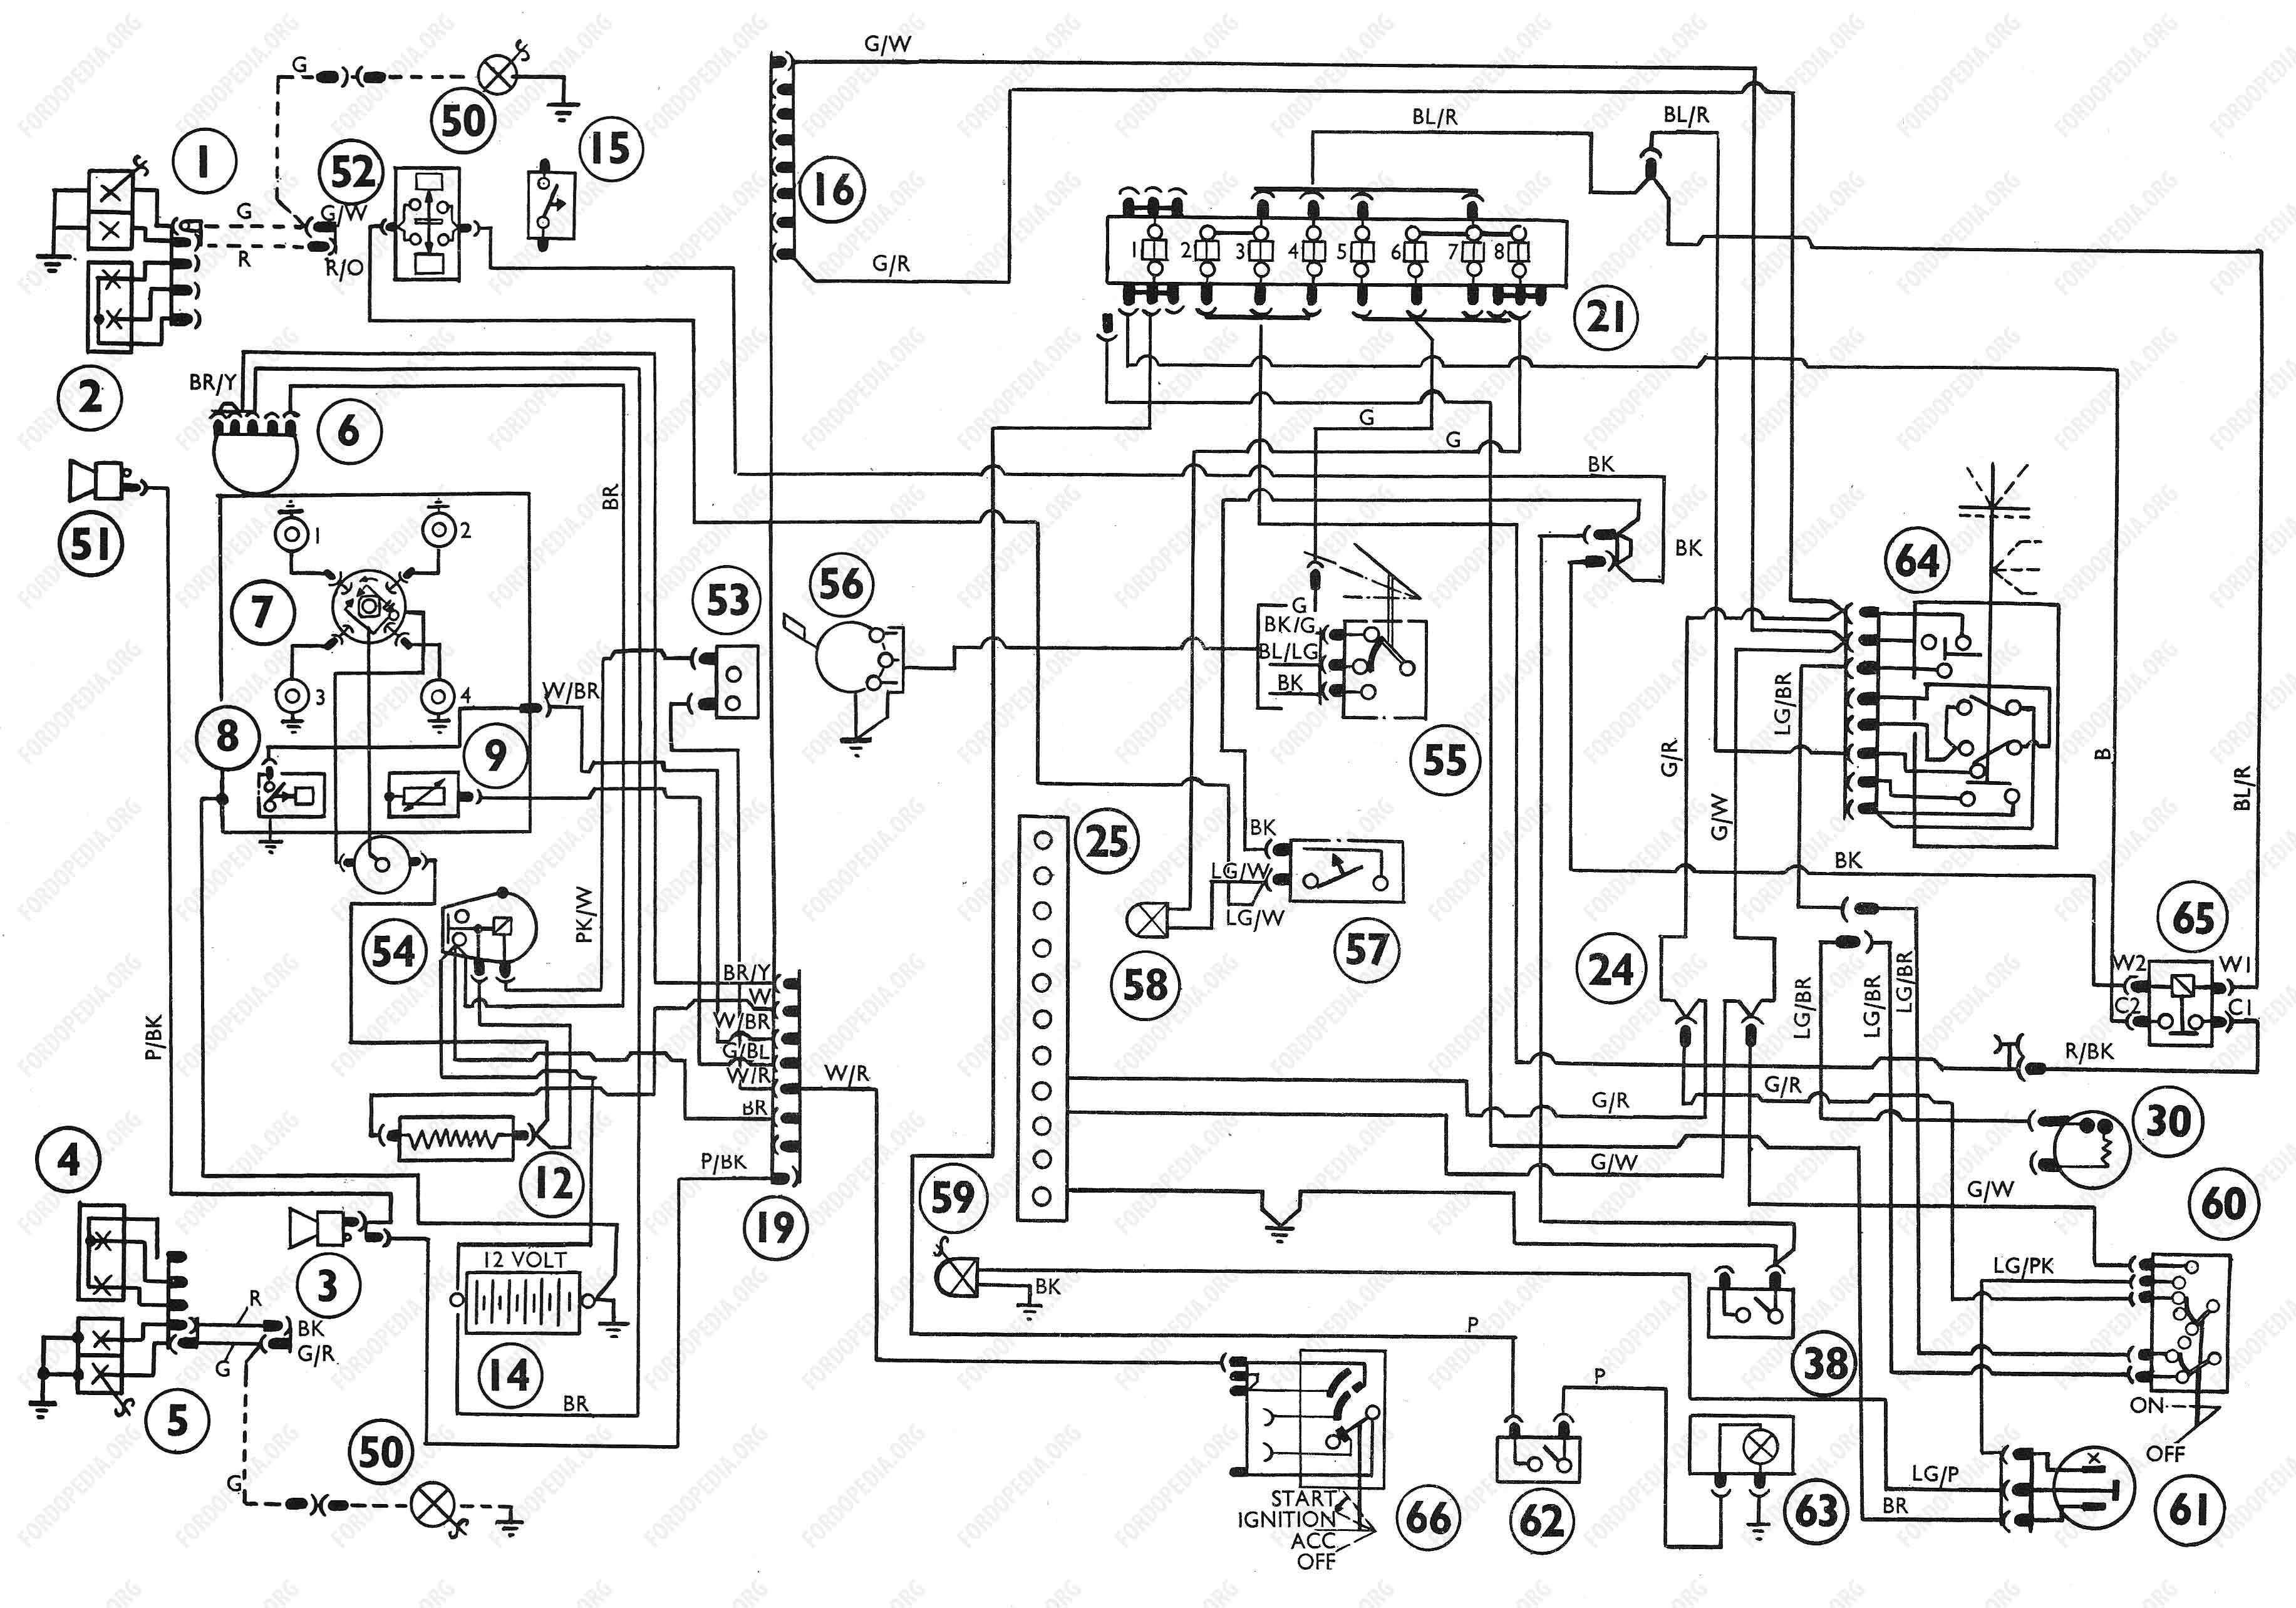 Ignition Switch Ign Thermal Cost Key Diagram In Universal Wiring likewise 1963 Cj5 Wiring 1820370 likewise 92 Ford F 150 302 Wiring Diagram further Exploded Diagram Of A Toyota Corolla E11 Typical Startersolenoid Assembly likewise Ford F150 F250 How To Replace Your Timing Chain 361728. on jeep alternator wiring diagram